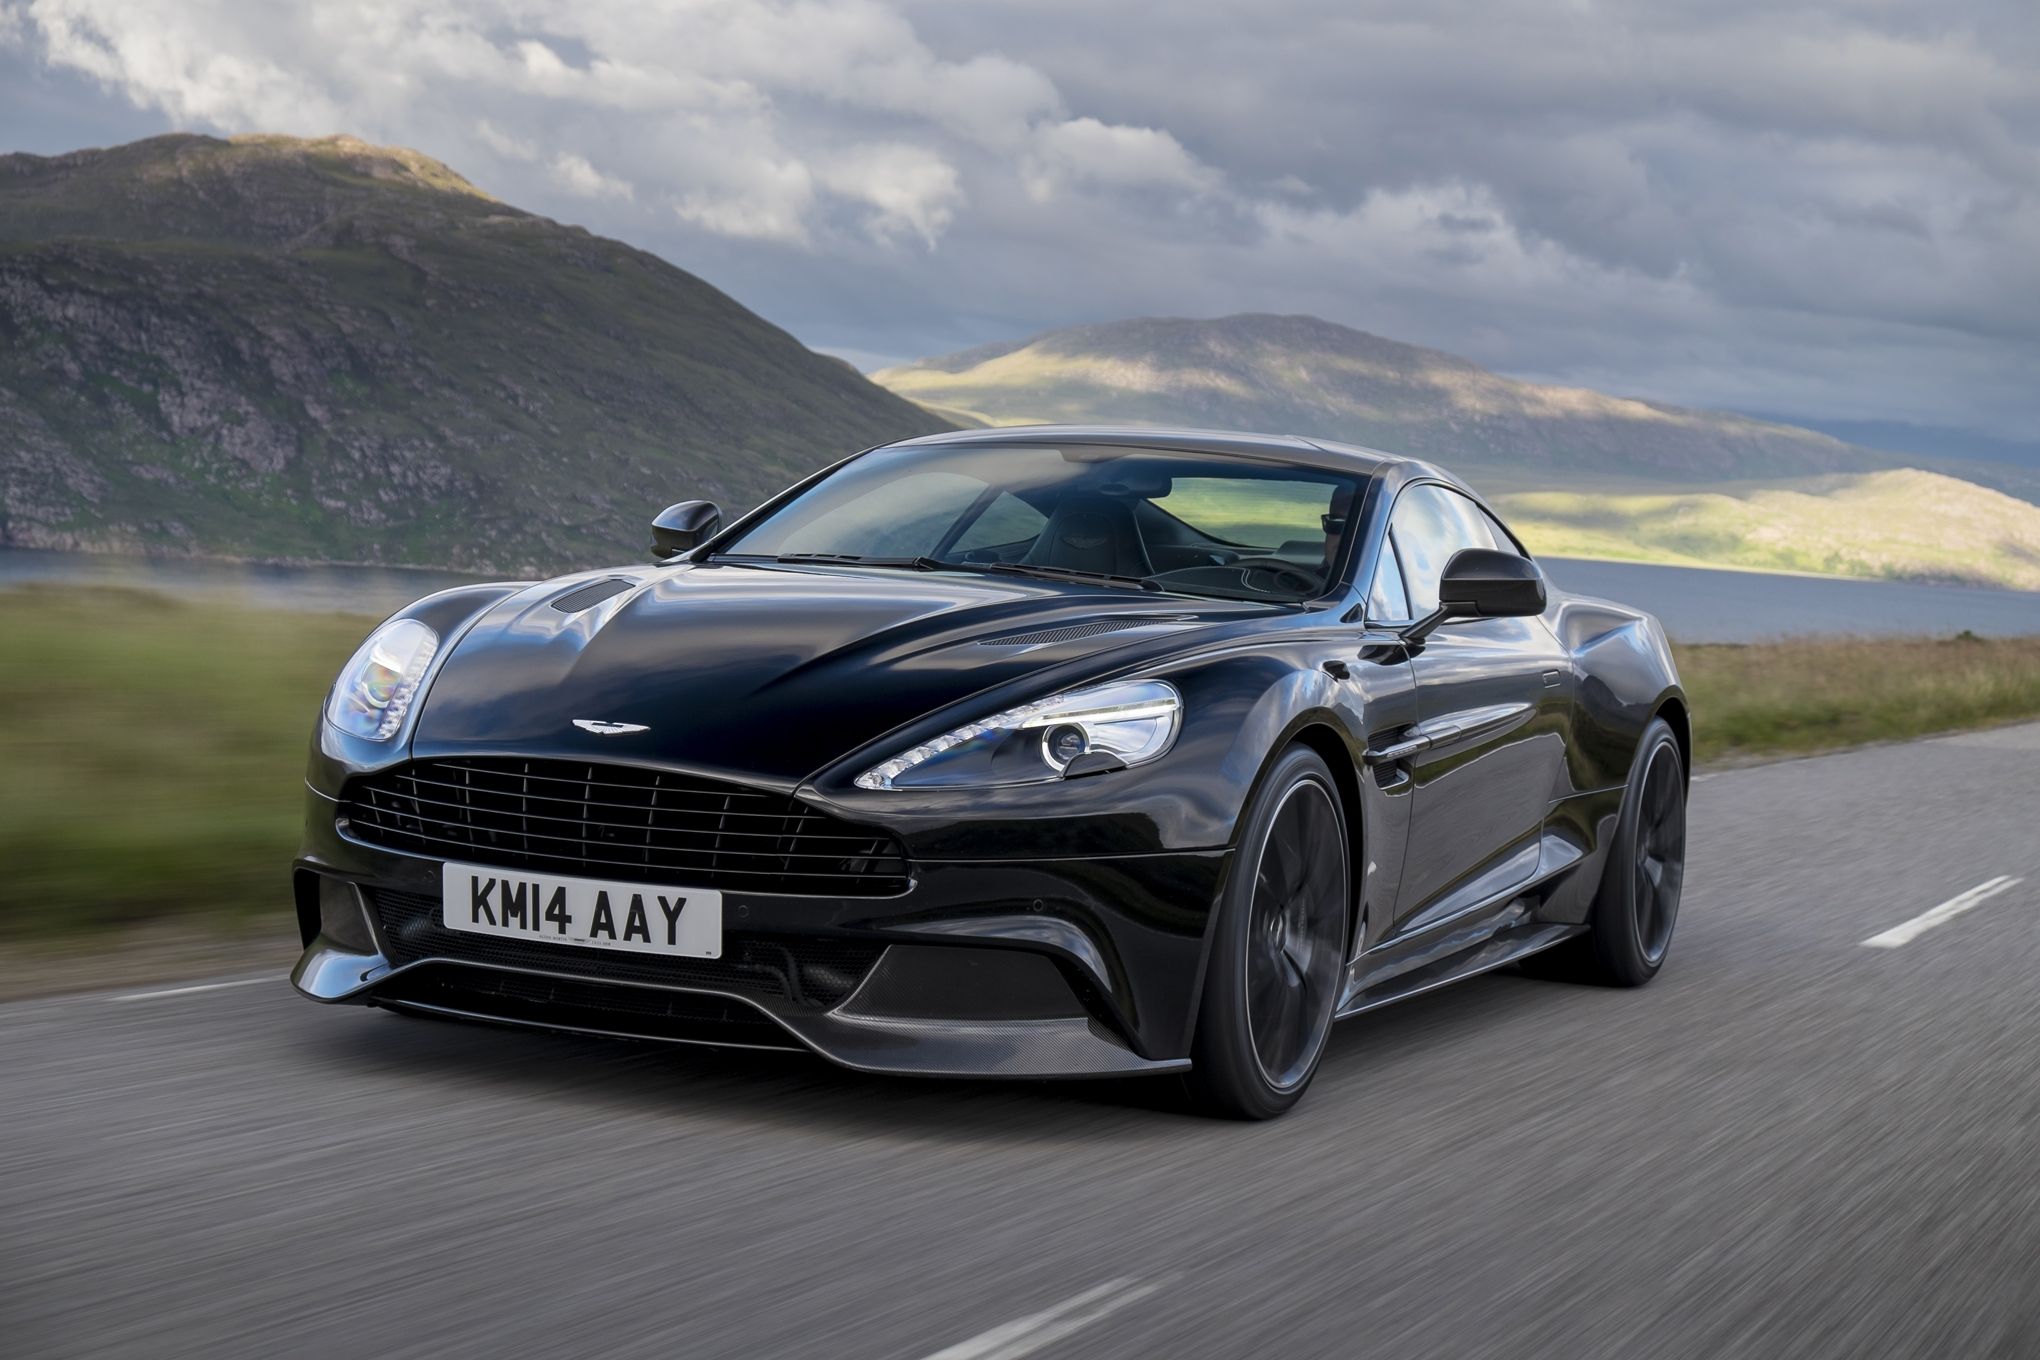 Is The Aston Martin Vanquish Really Worth Carspooncom - Aston martin vanquish gt price